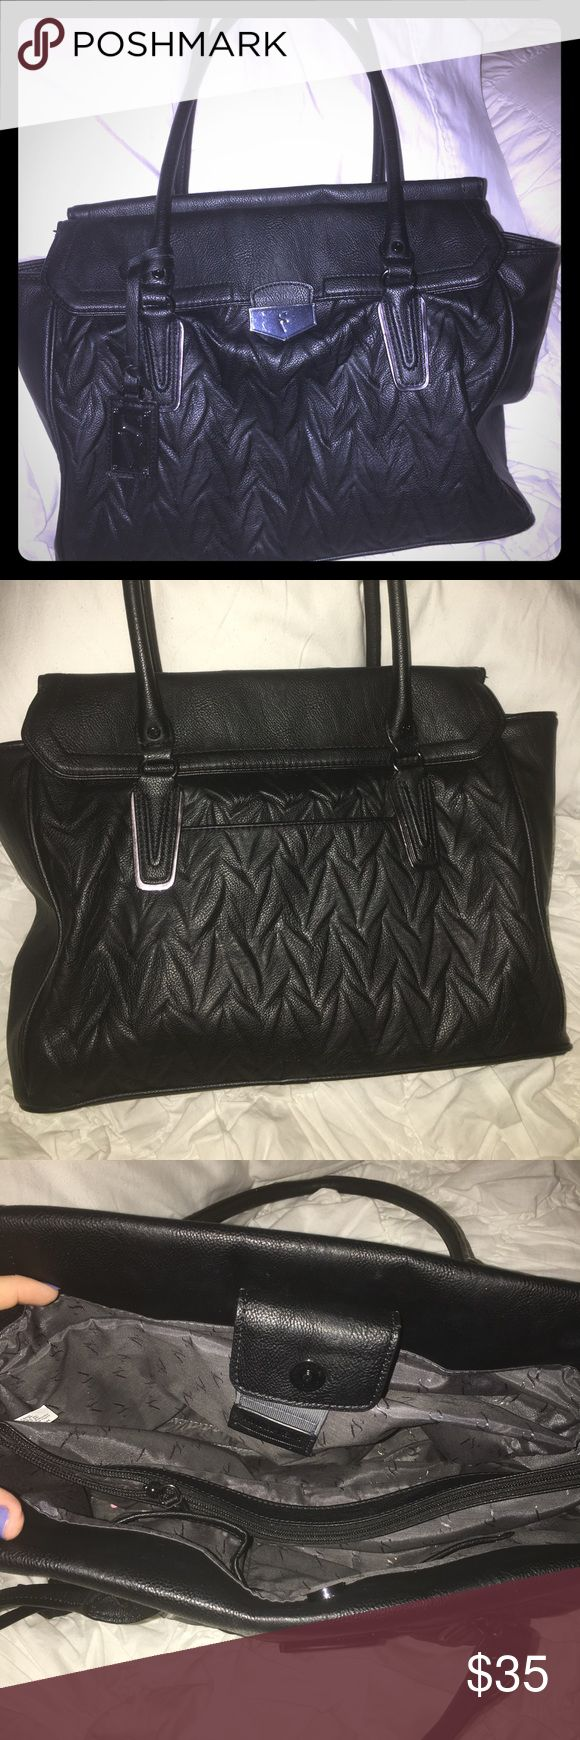 Simply Vera Wang Purse Like New! Only used 3/4 times. Loads of pockets. Small laptop or a tablet fits easily inside! Longer handles, so it carries well! Simply Vera Vera Wang Bags Satchels